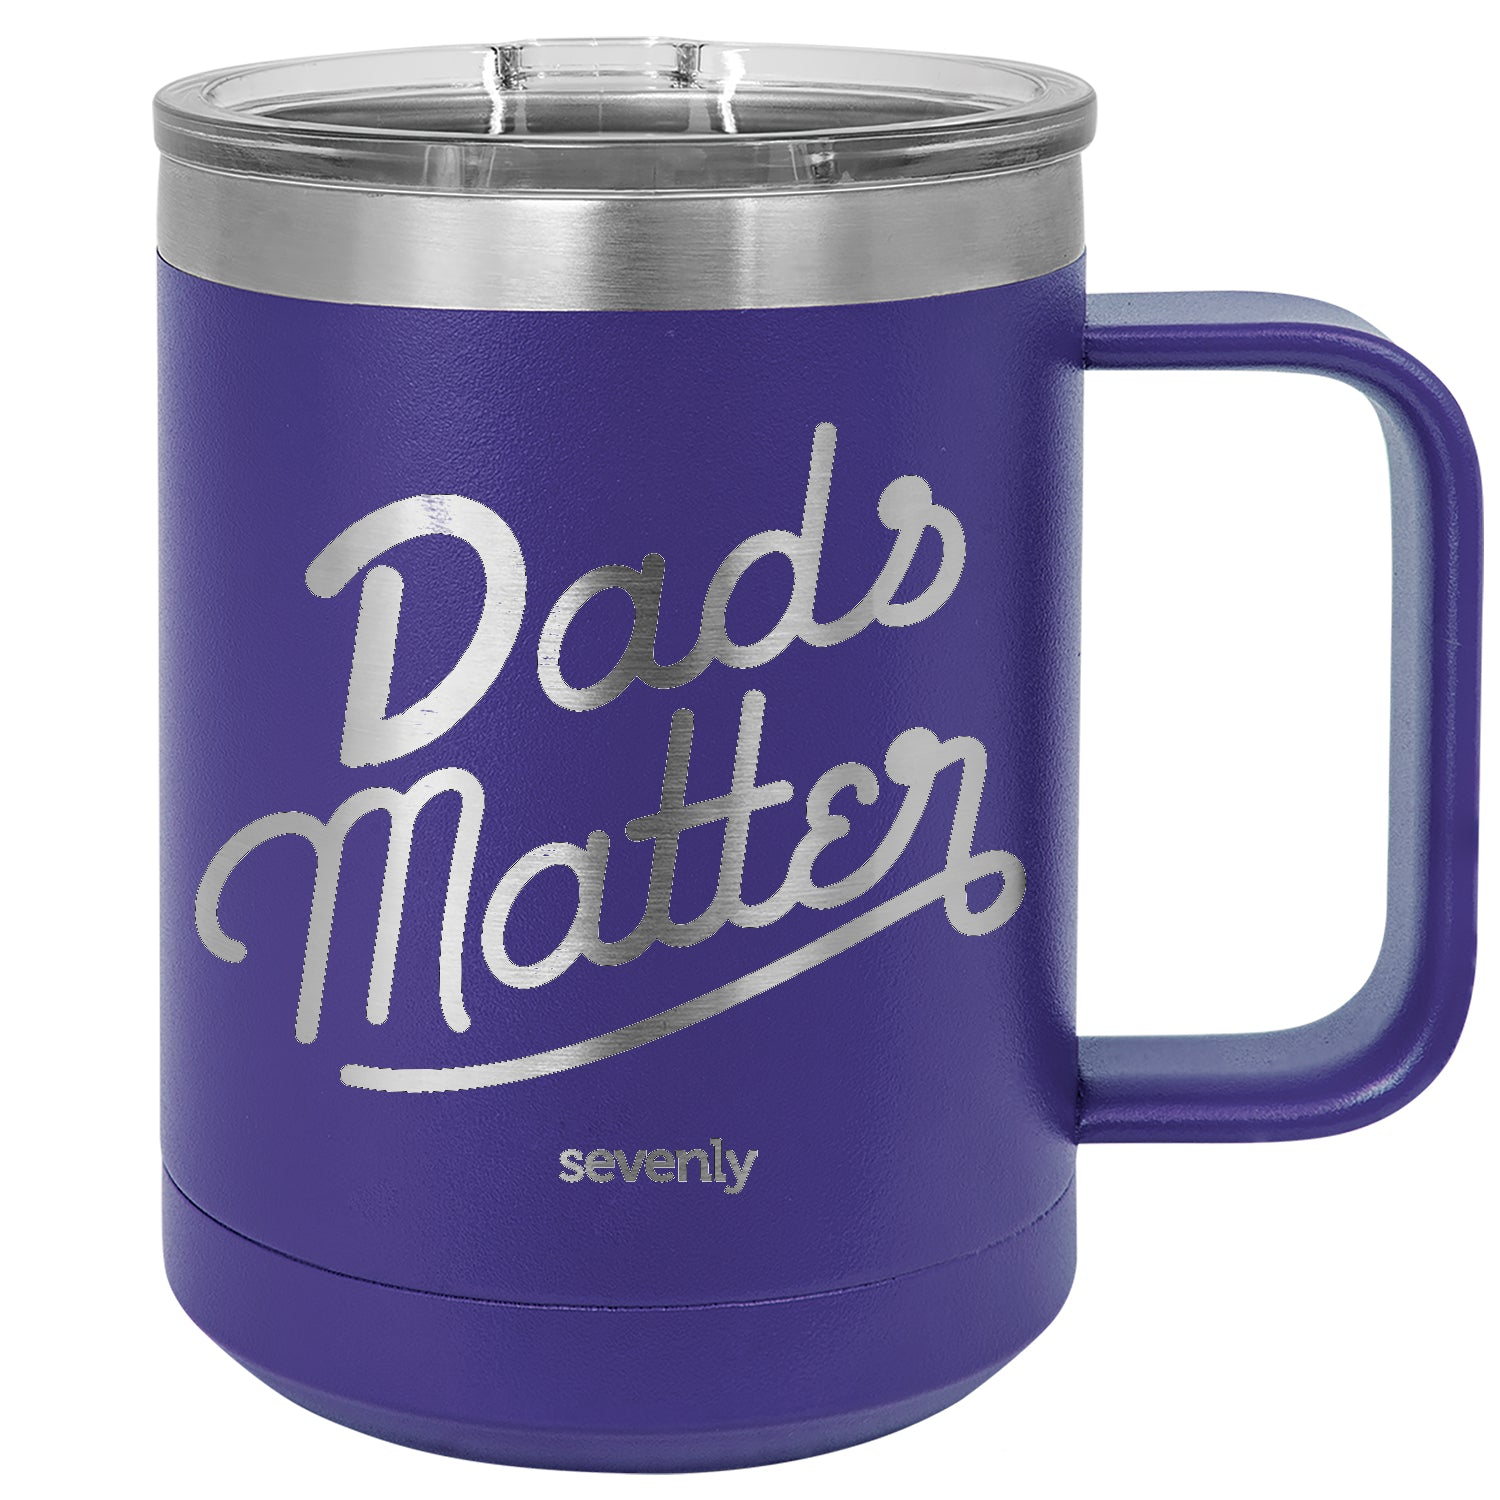 Dads Matter Insulated Mug Drinkware